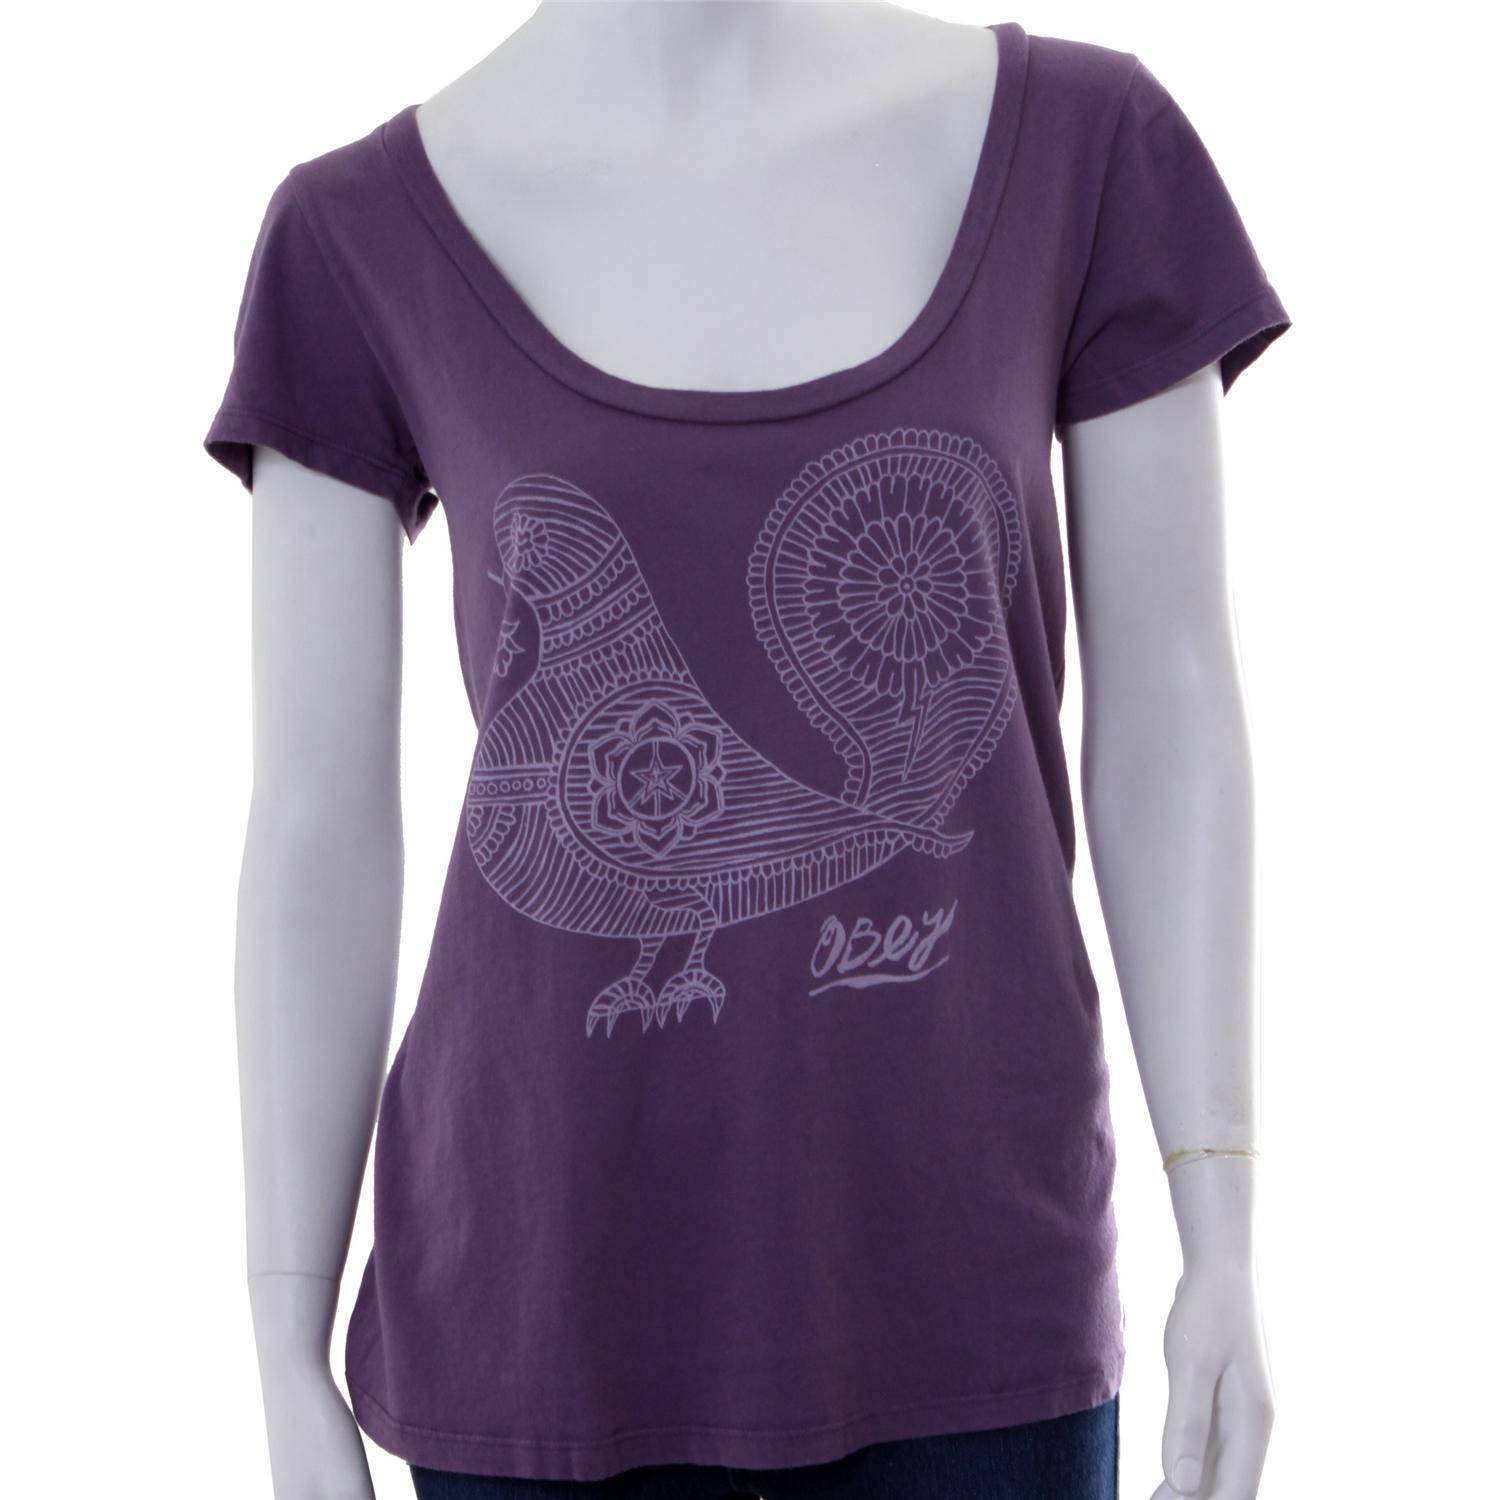 Obey Clothing Pigeon T Shirt - Women's